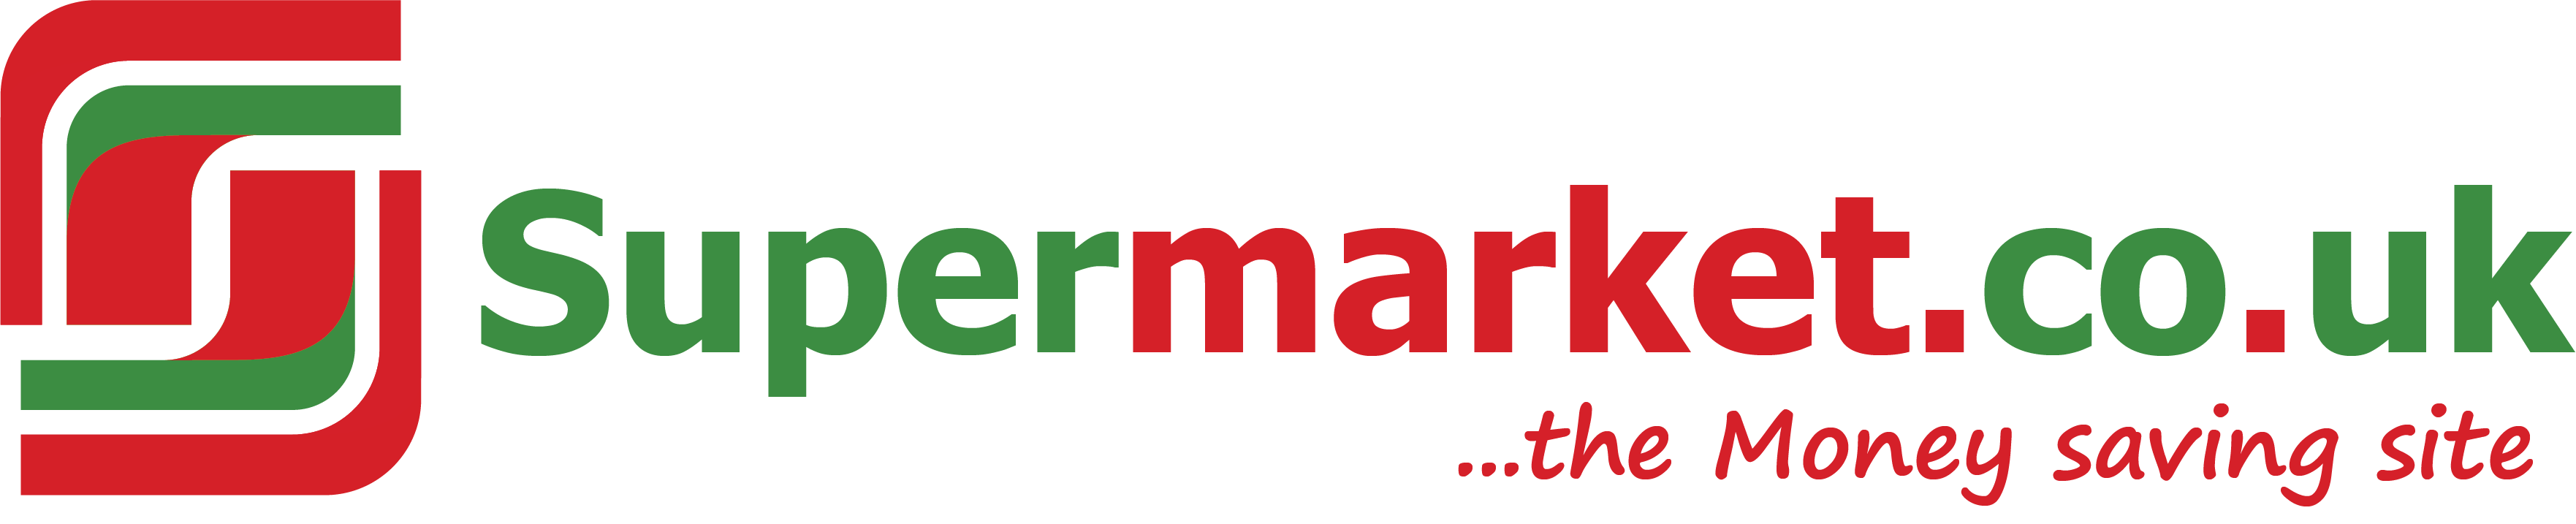 Supermarket.co.uk